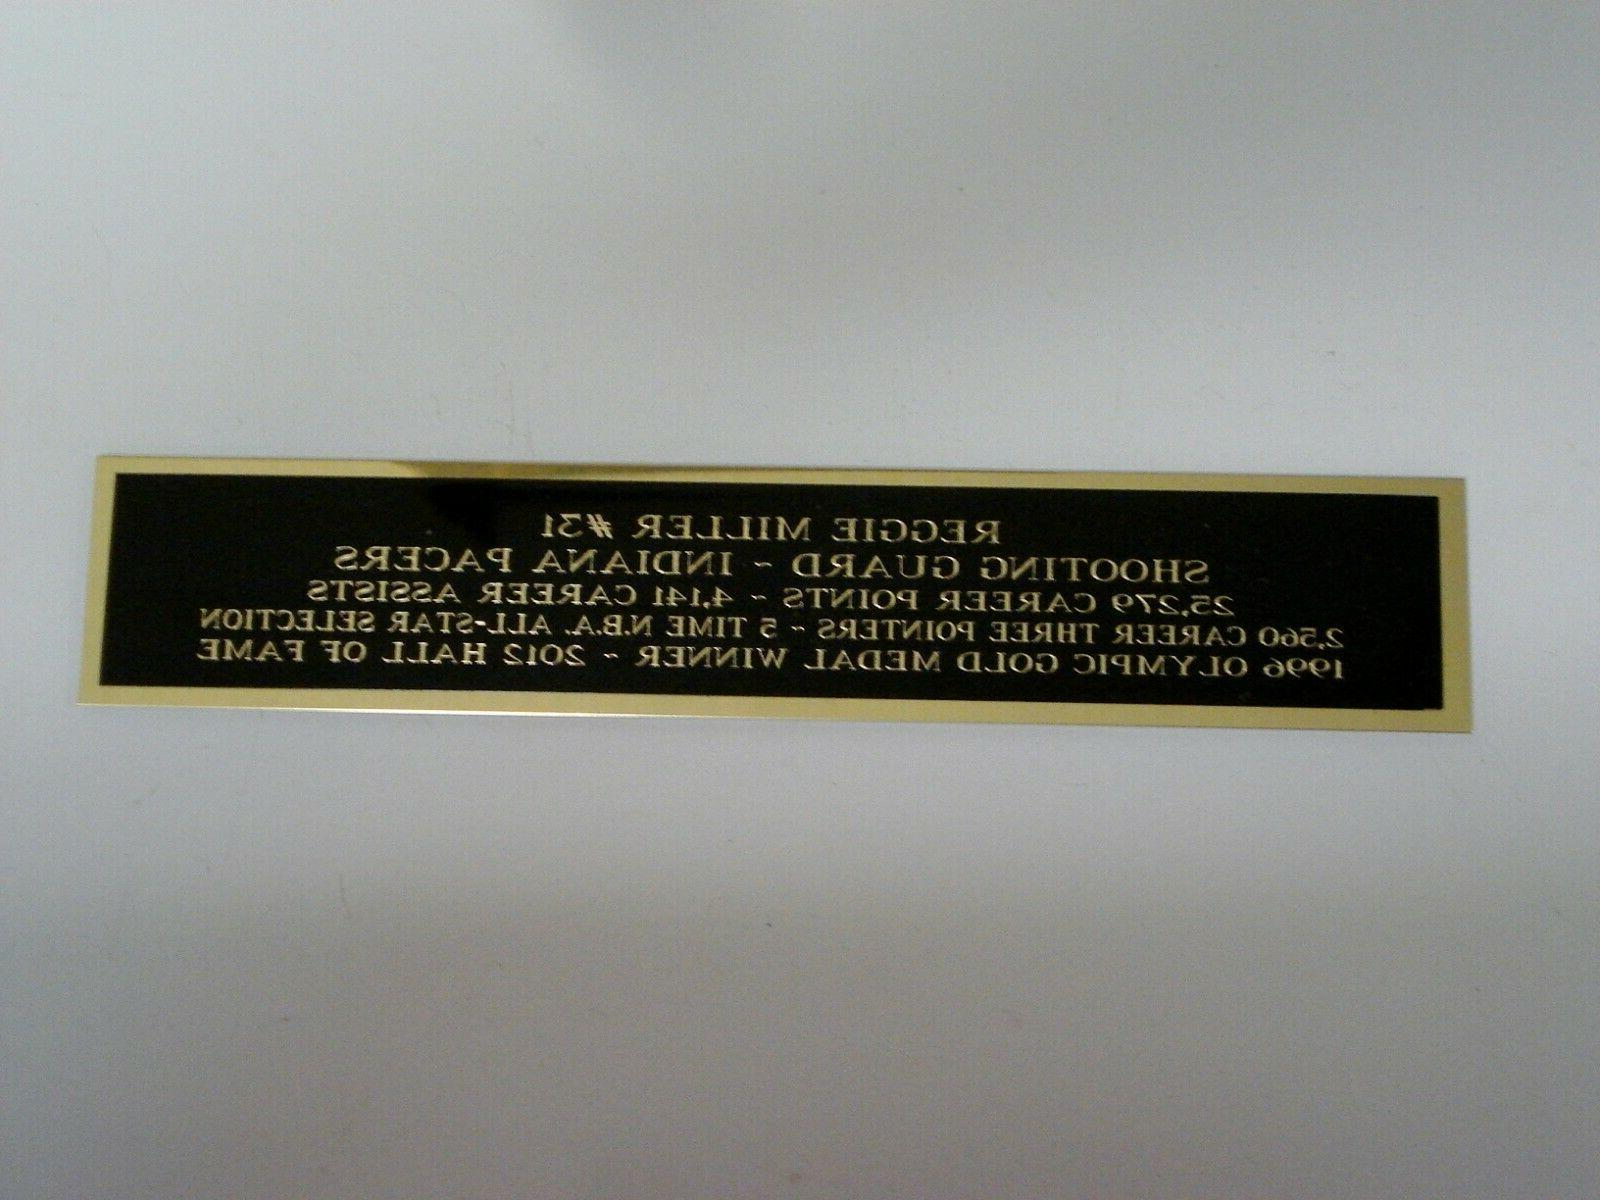 reggie miller pacers nameplate for a basketball